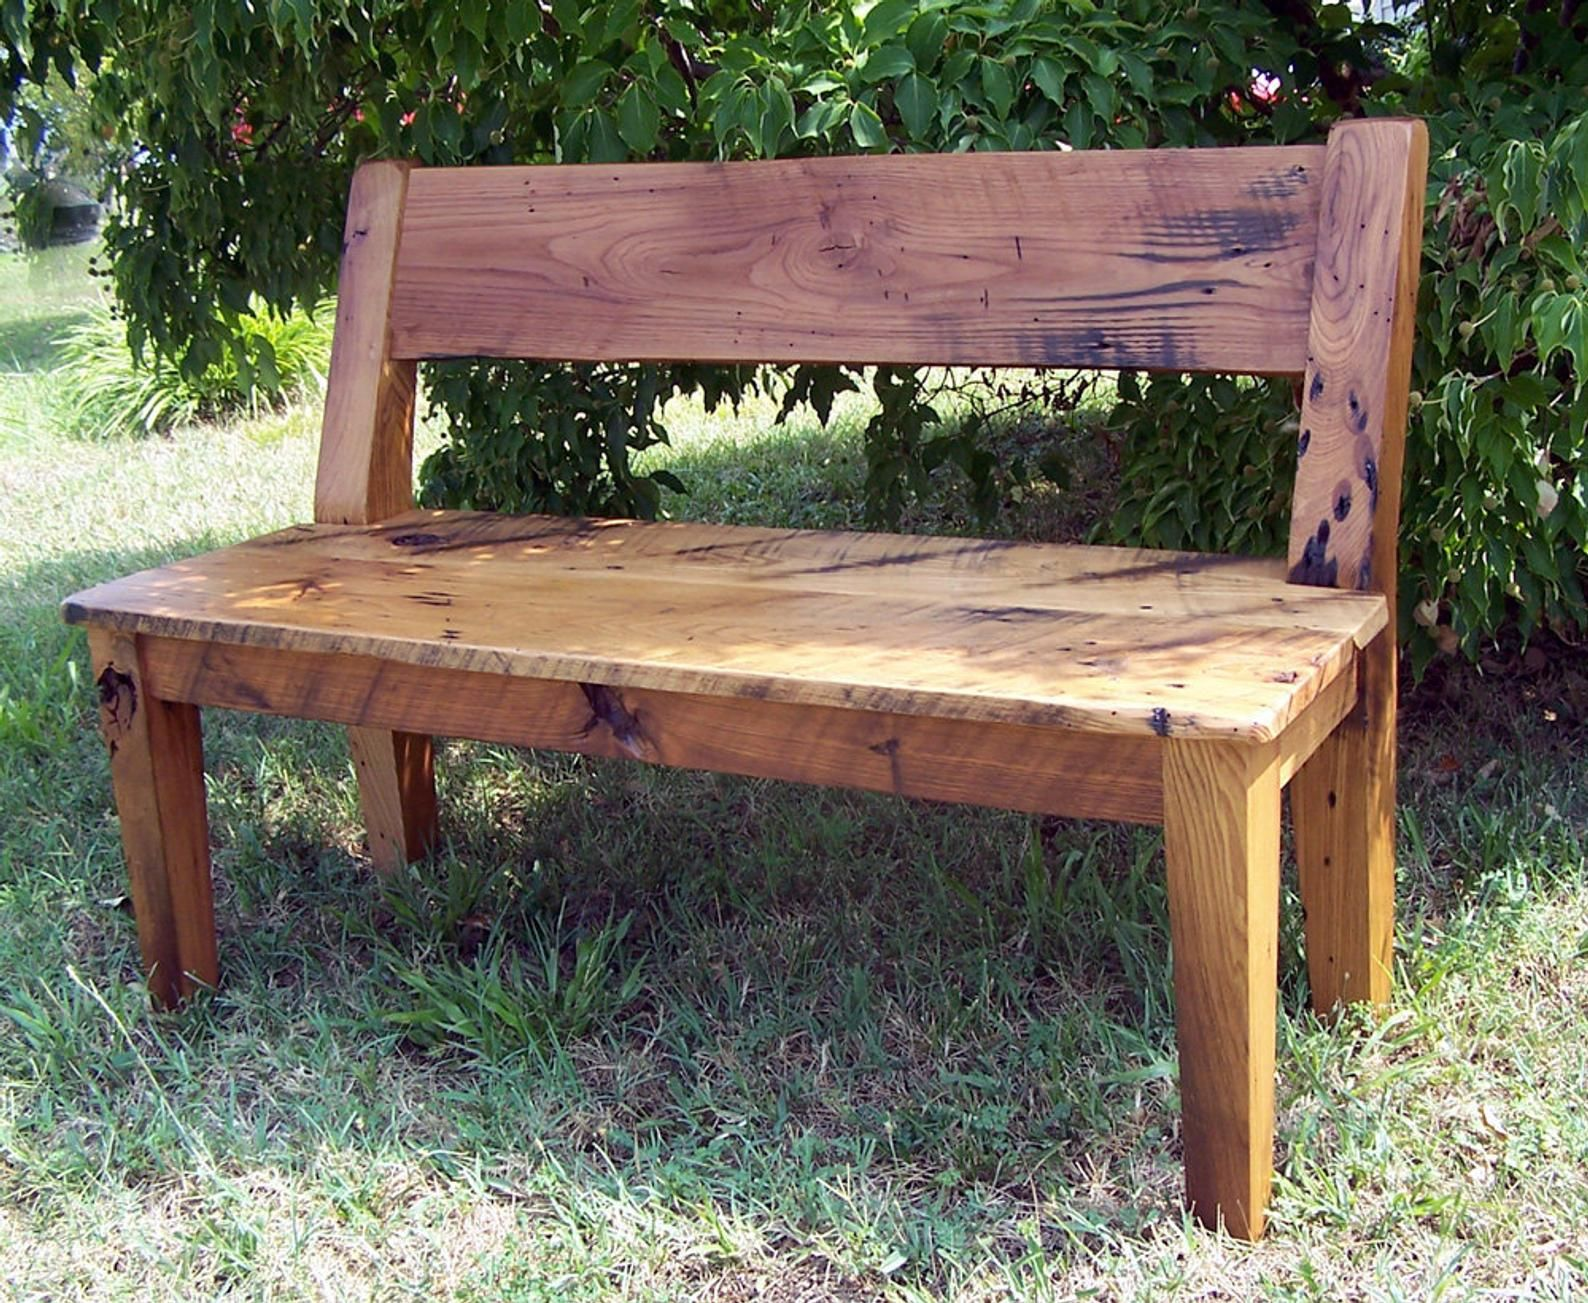 Wood Dining Bench Wood Bench With Back Reclaimed Wood Bench Etsy In 2020 Wood Dining Bench Wood Bench With Back Dining Bench With Back